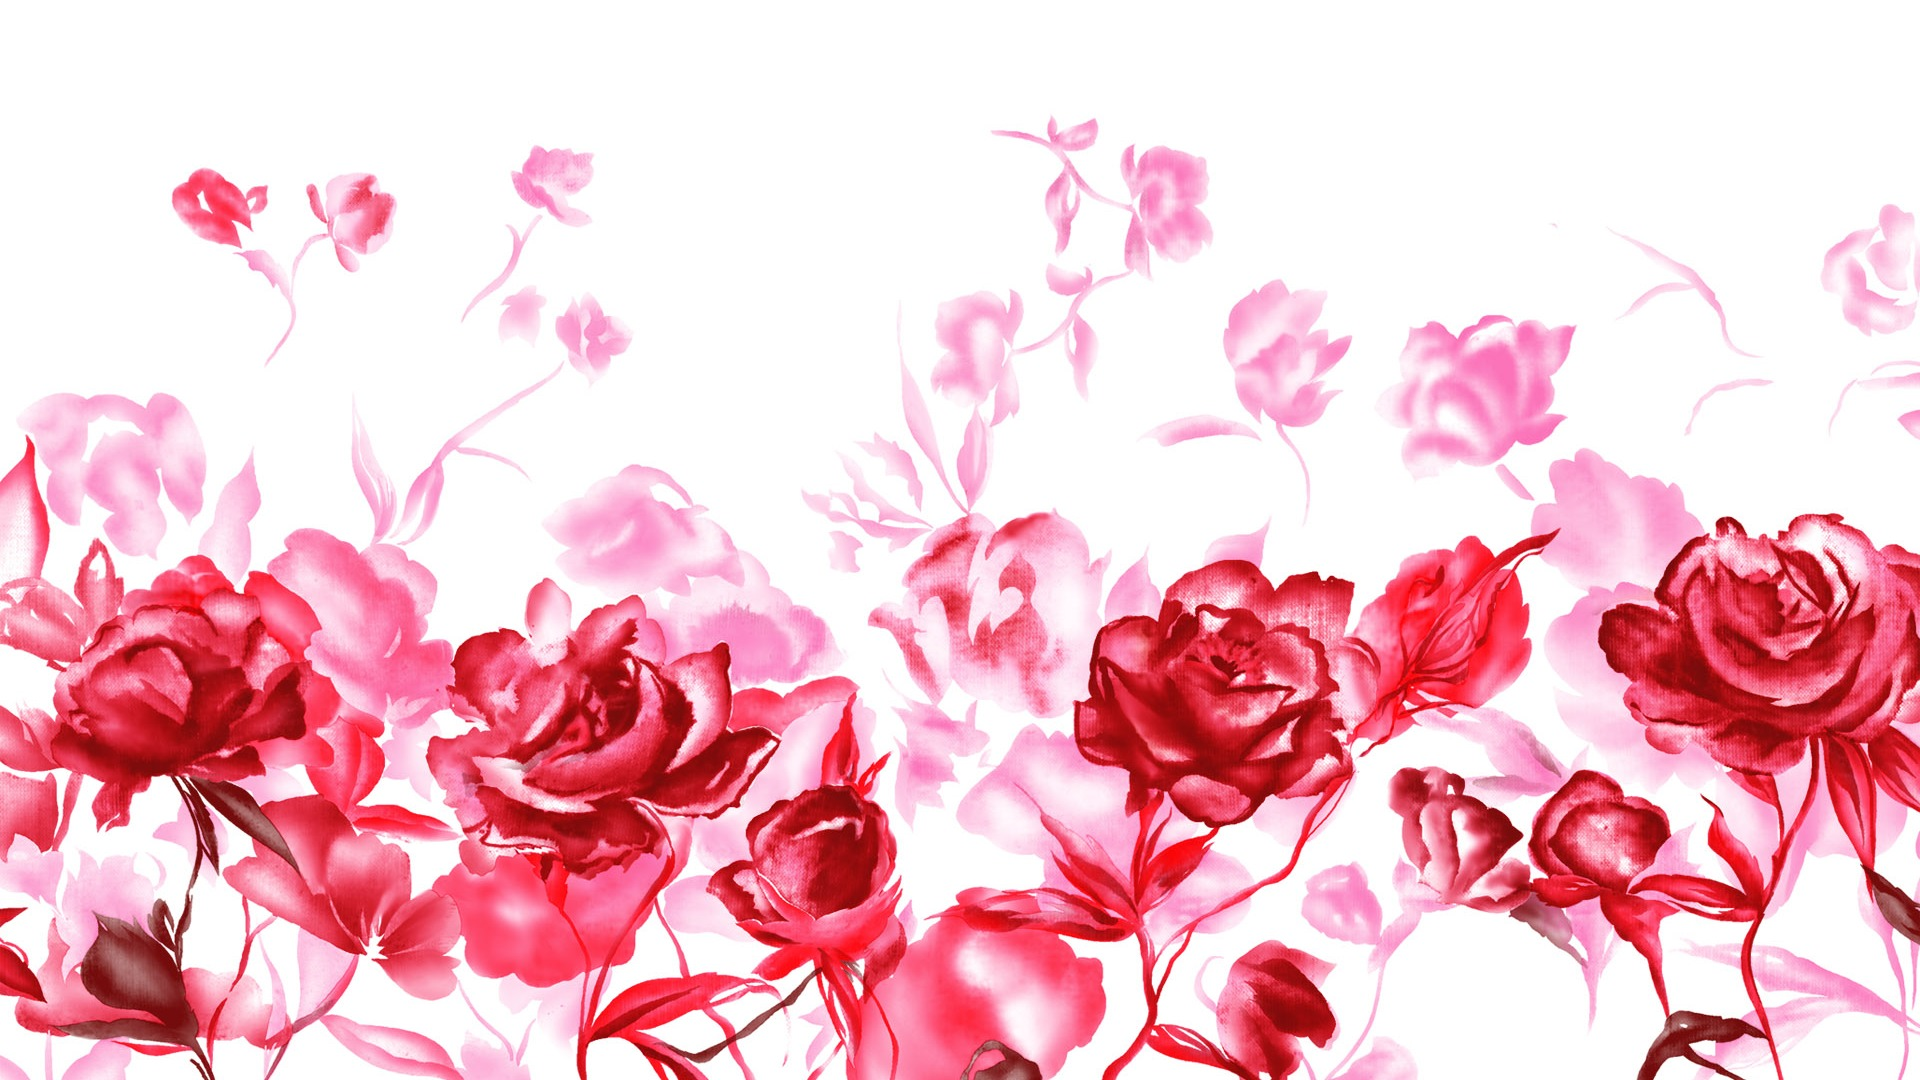 Love Theme Wallpaper Desktop : Valentinstag Love Theme Wallpaper (3) #15 - 1920x1080 Wallpaper herunterladen - Valentinstag ...